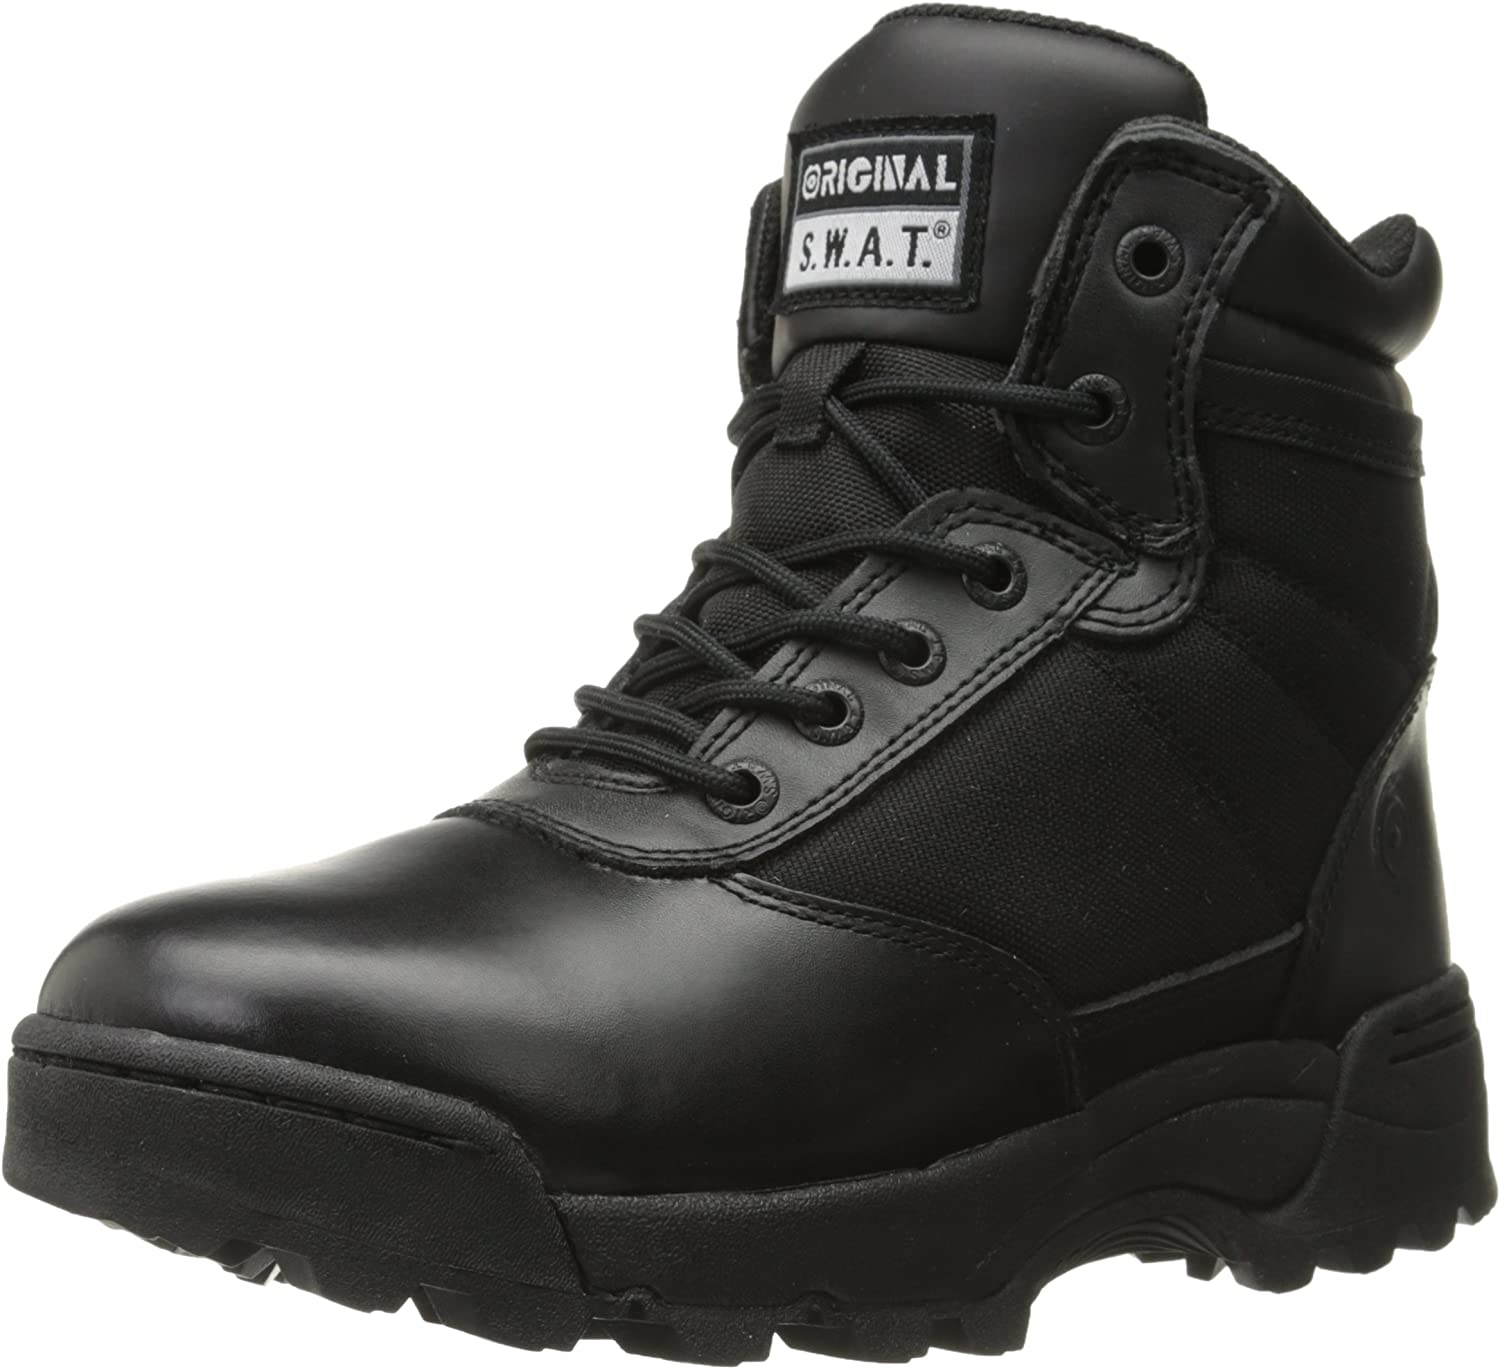 Original Today's only S.W.A.T. Men's Classic Military Tactical 6